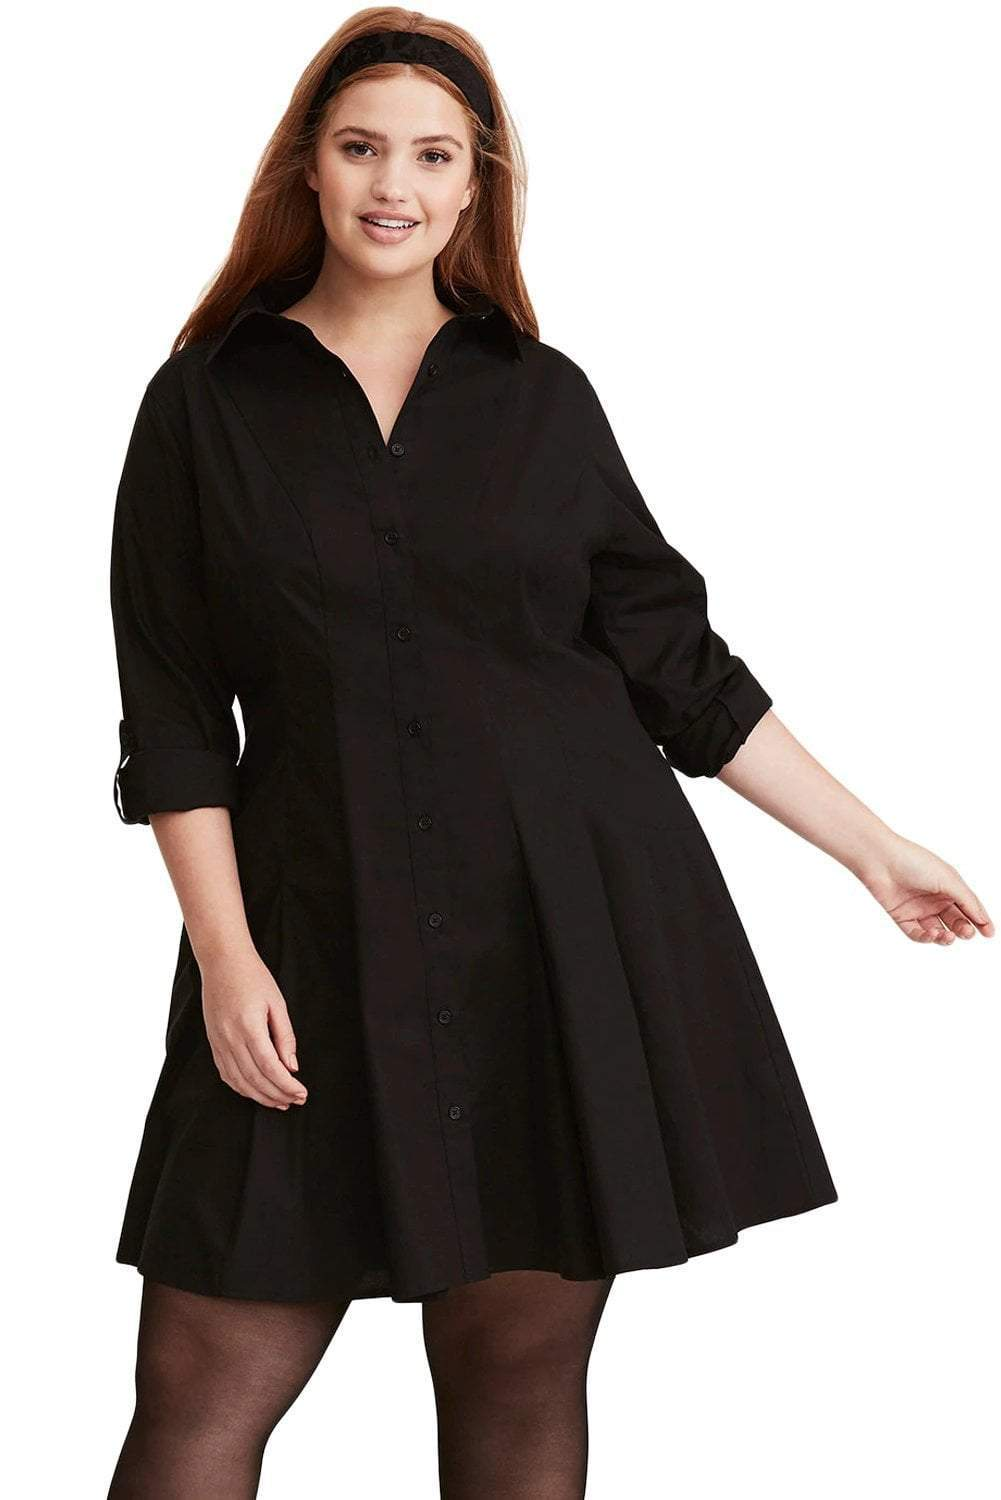 plus size Shirt Dress XL / AUS 14 - 16 / Black Kaelyn Shirt Dress